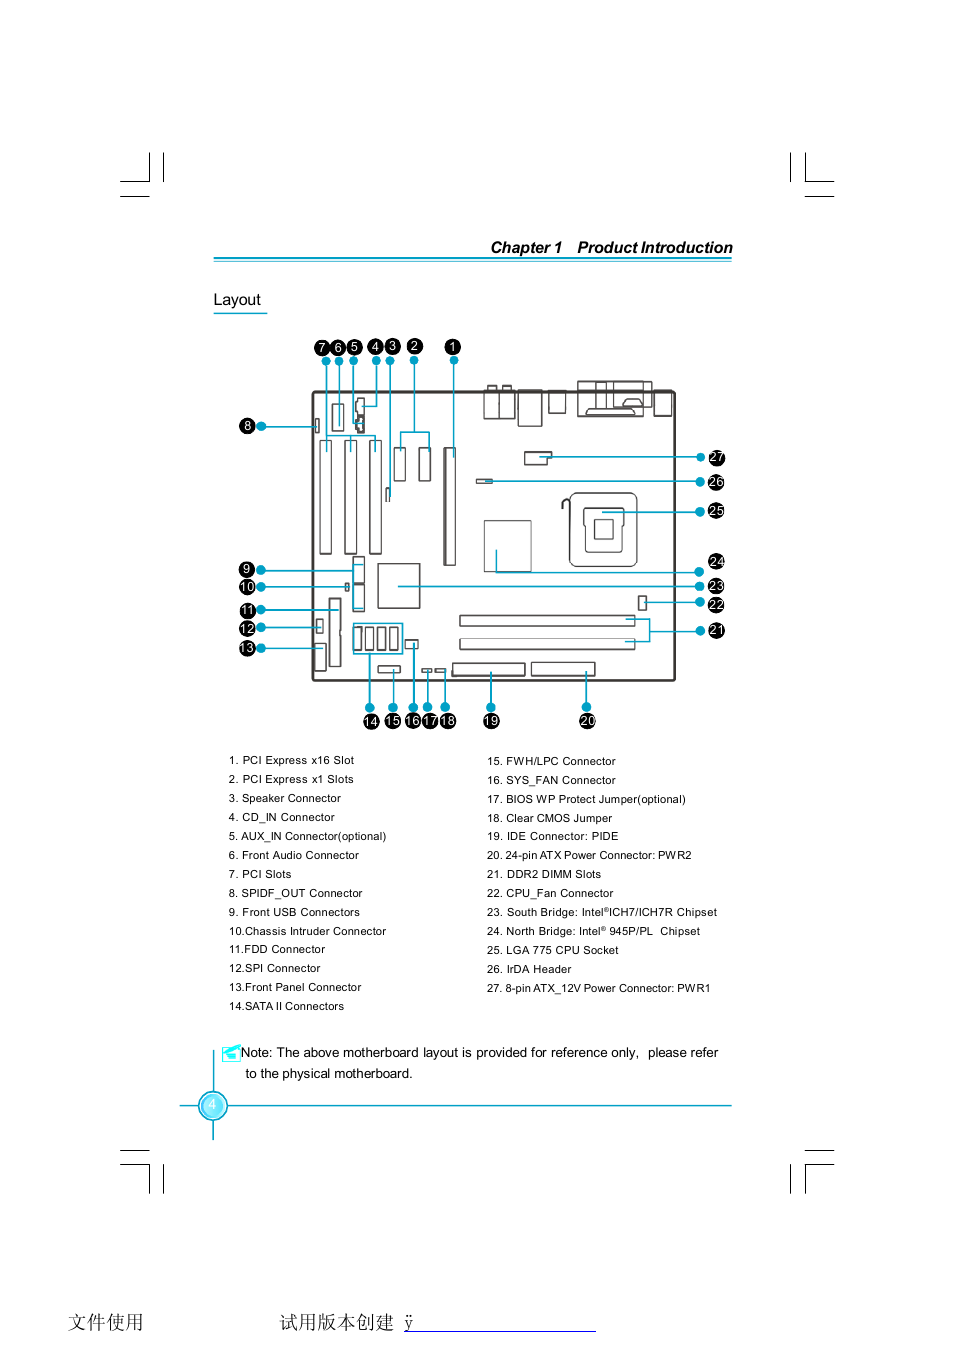 Foxconn 945pl7ae 8krs2hv User Manual Page 11 72 Also For Power Connectors Of The Front Panel Connector Your Reference 8ks2hv Ks2h 945p7ae 945p7ad 8ekrs2h 8ekrs2hv